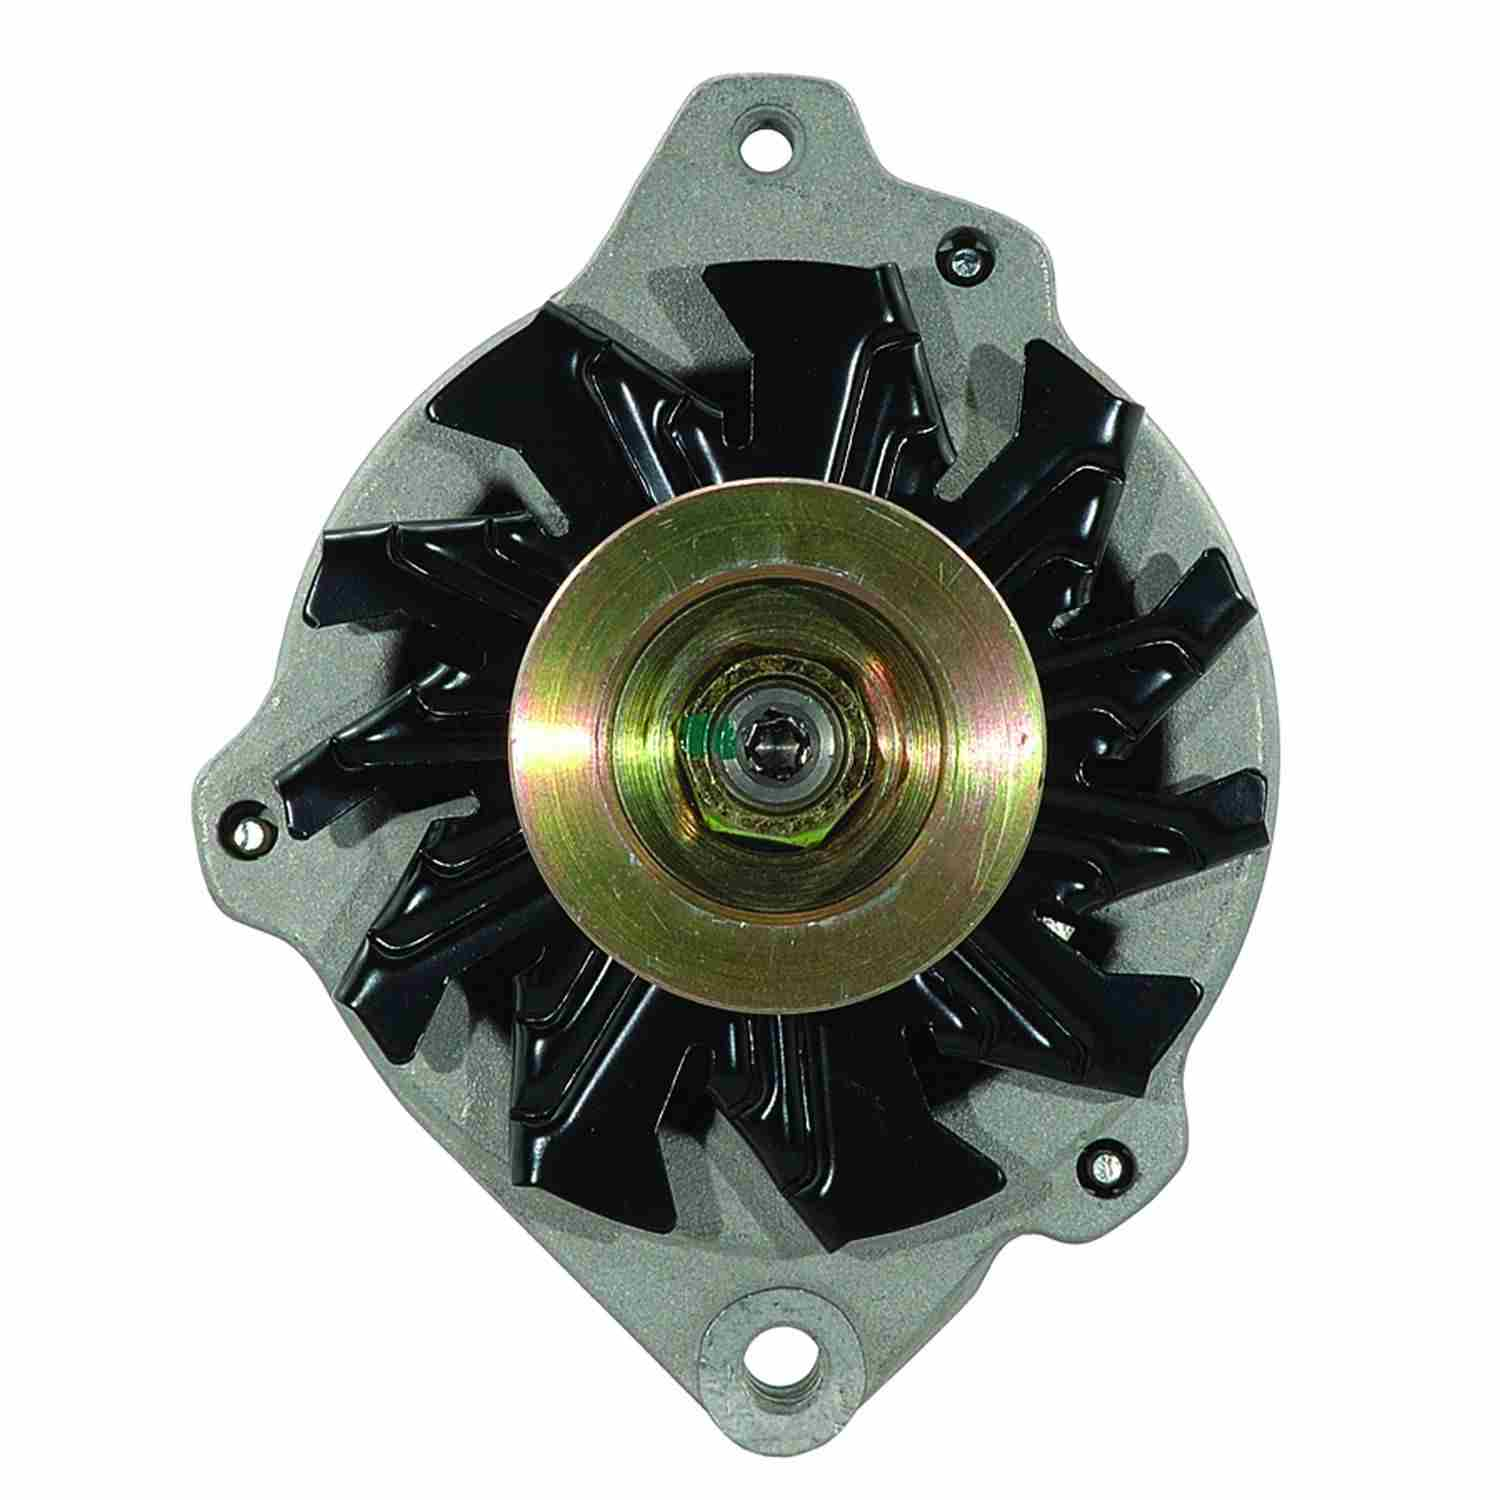 ACDELCO GOLD/PROFESSIONAL - Alternator - DCC 335-1006